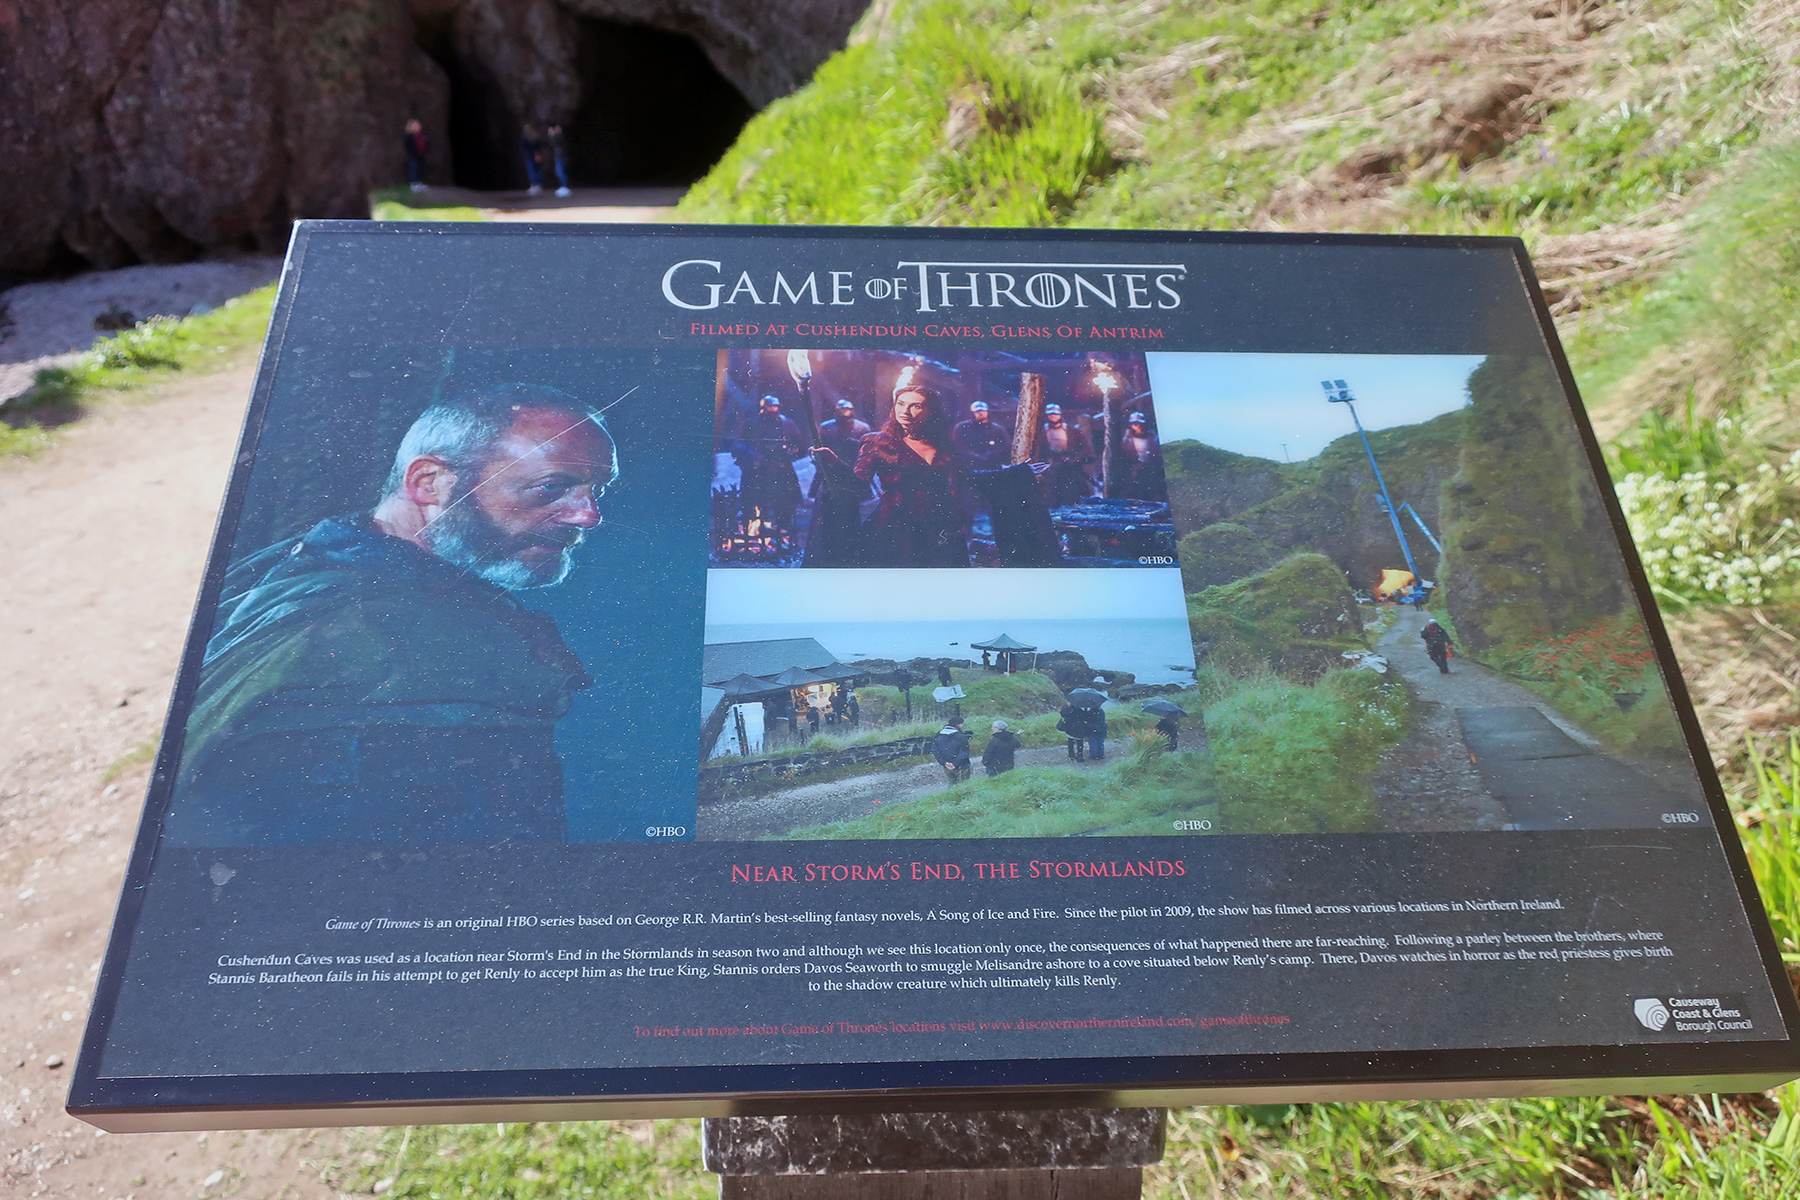 Game of Thrones-Drehorte: 20 Filmlocations in Nordirland, zu denen GOT-Fans reisen müssen